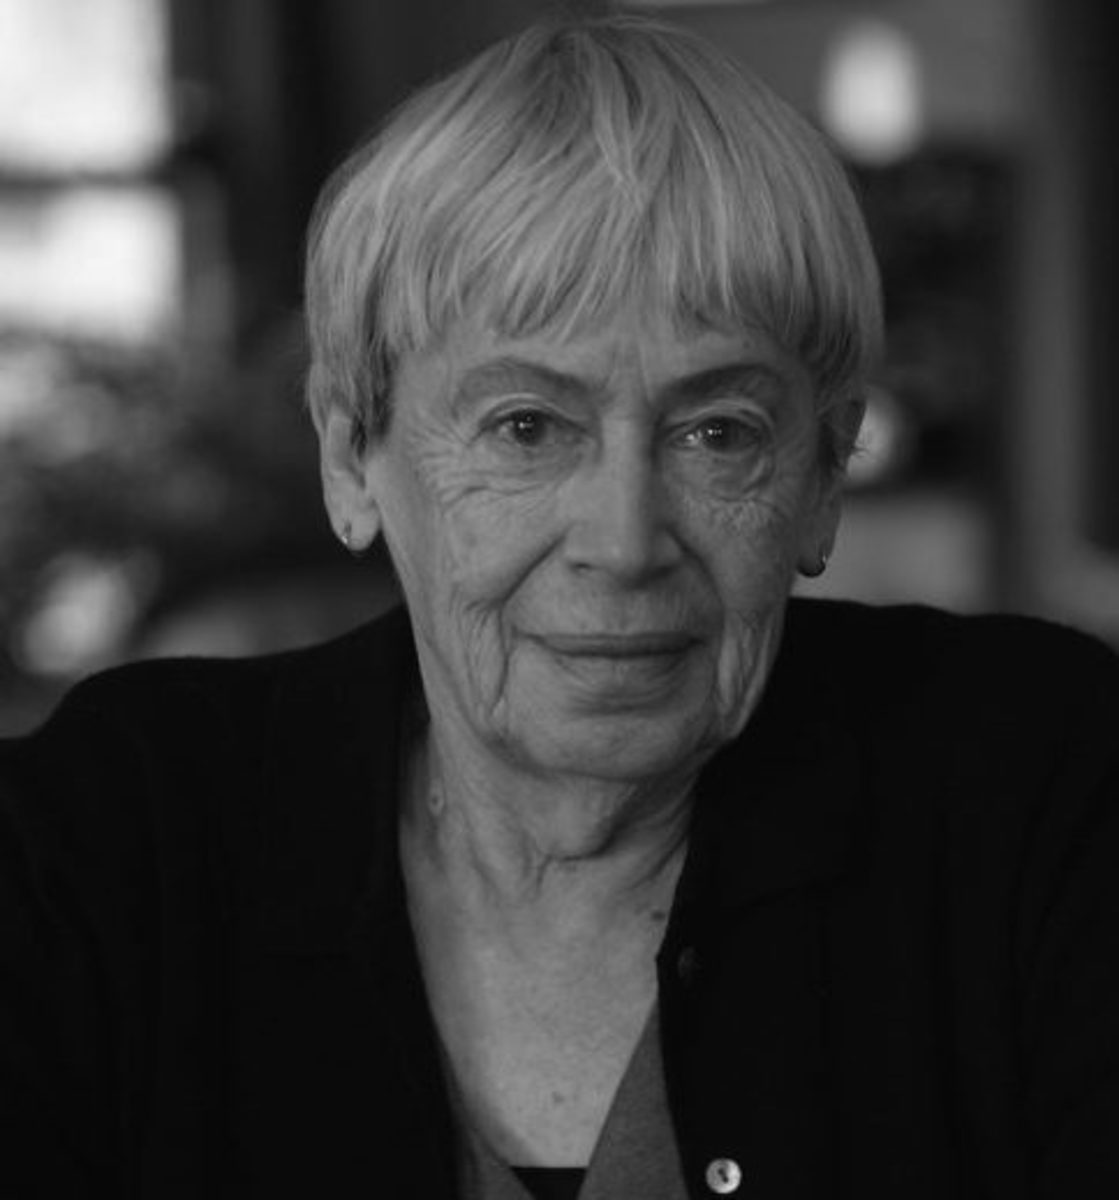 Ursula Le Guin at home in Portland, Origon, California December 15 2005. (Photo by Dan Tuffs/Getty Images)